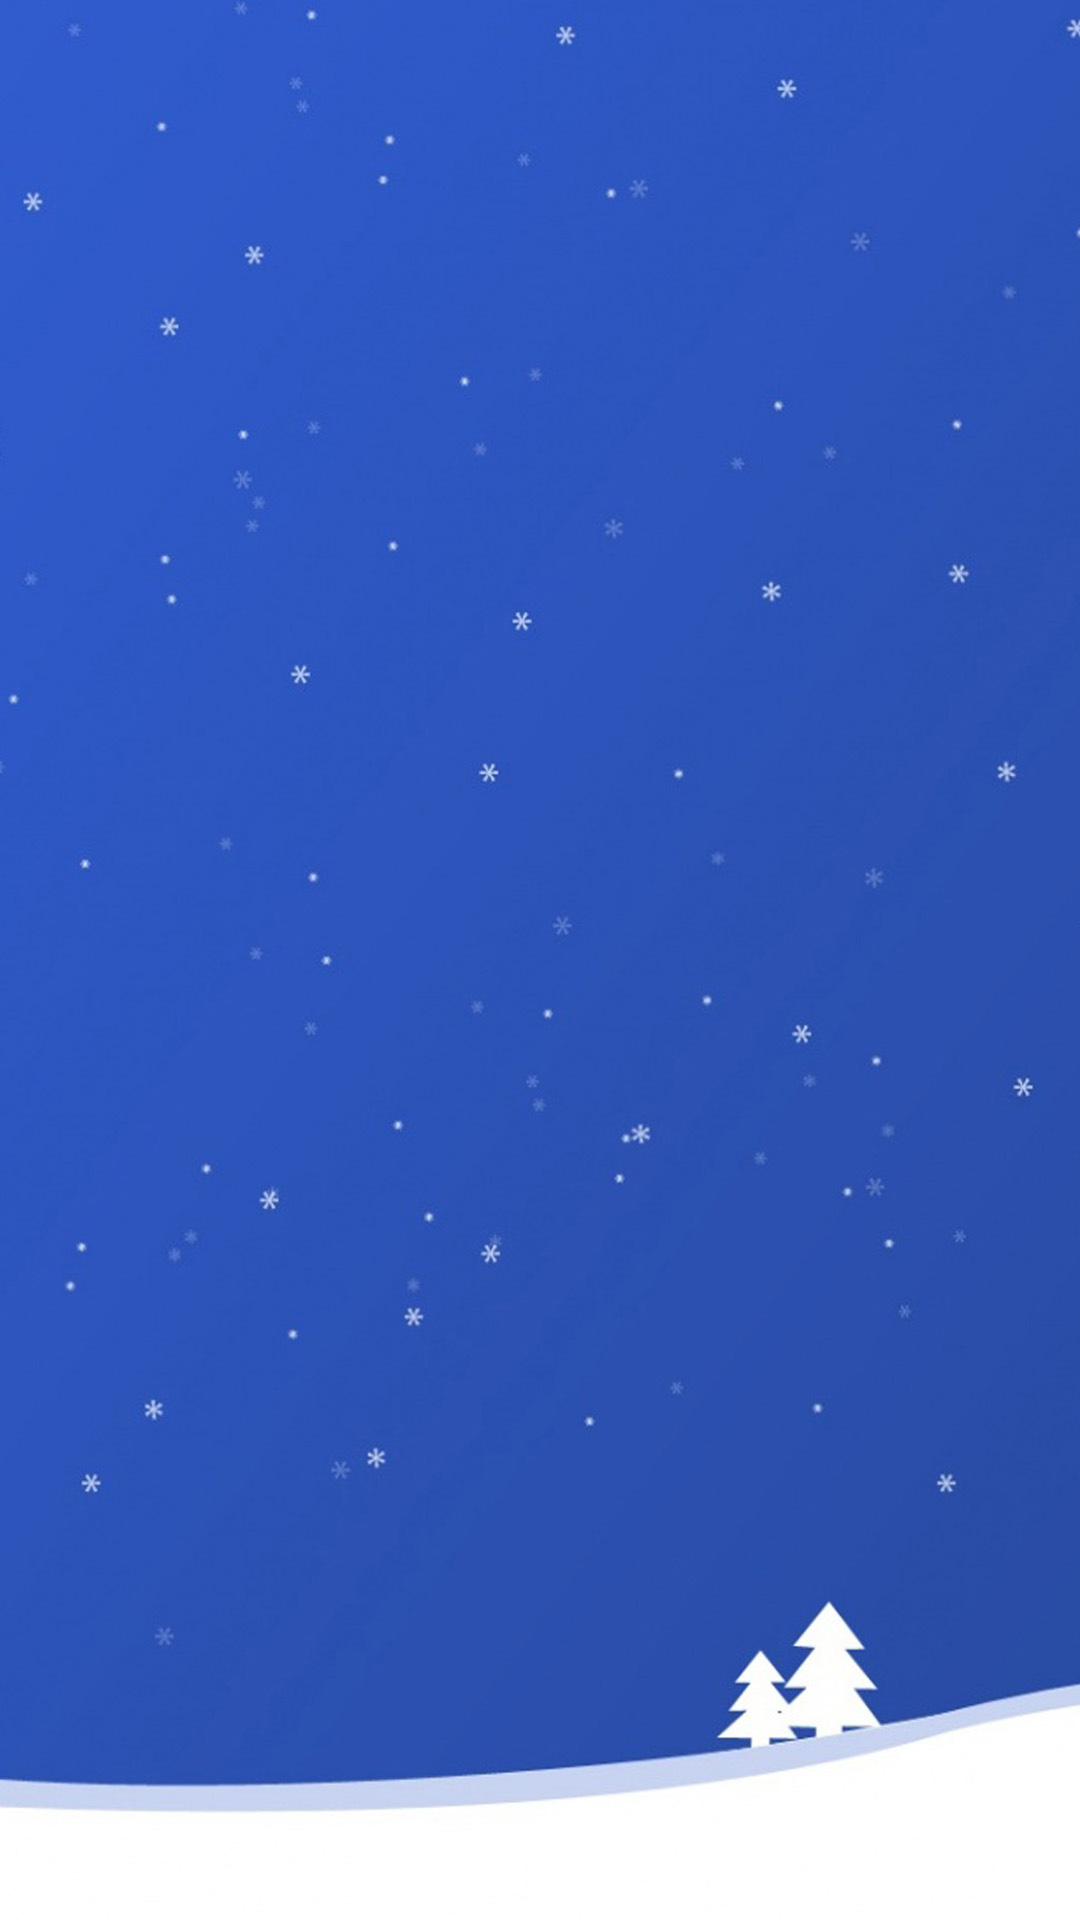 Free Christmas Wallpapers for iPhone 7